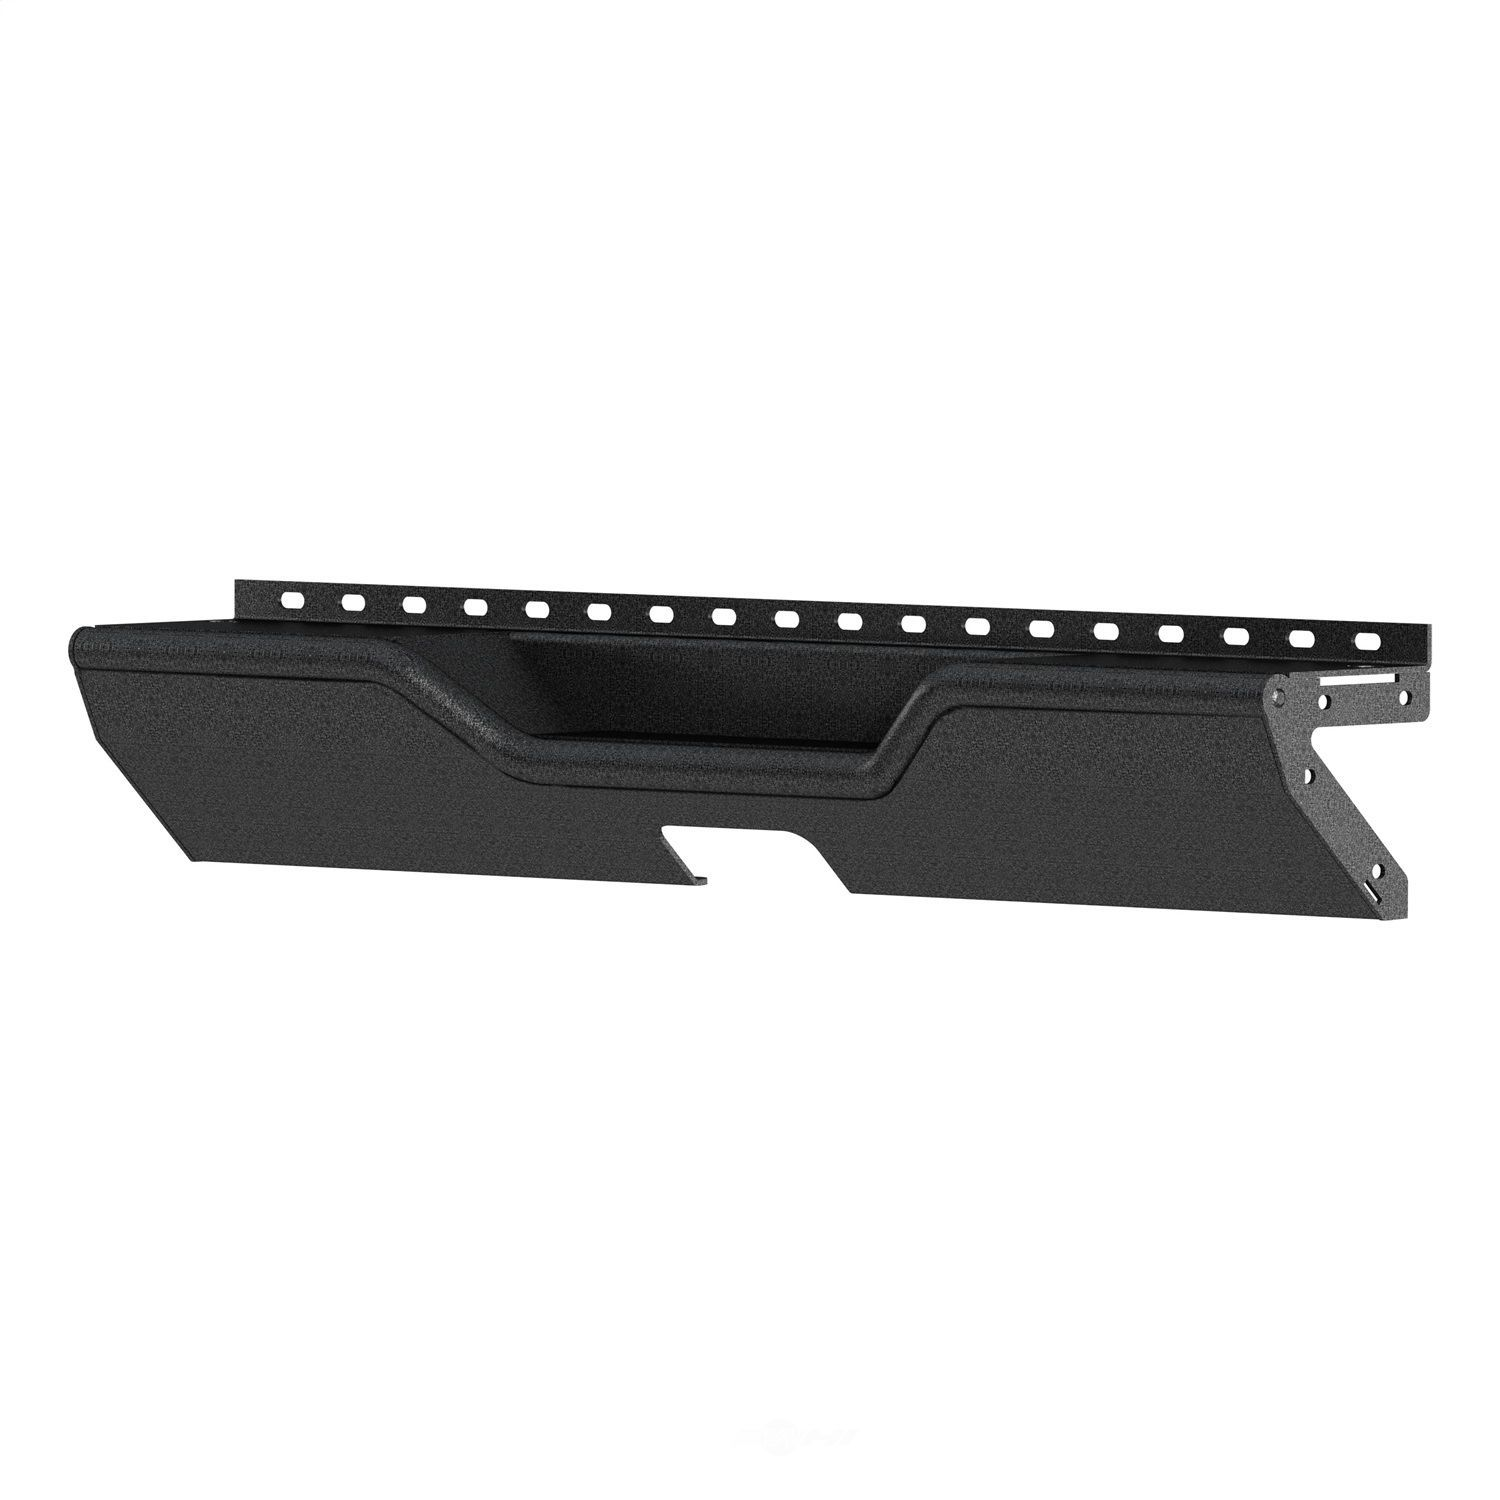 ARIES - Trailchaser Rear Bumper Center Section (Rear) - AR2 2081025